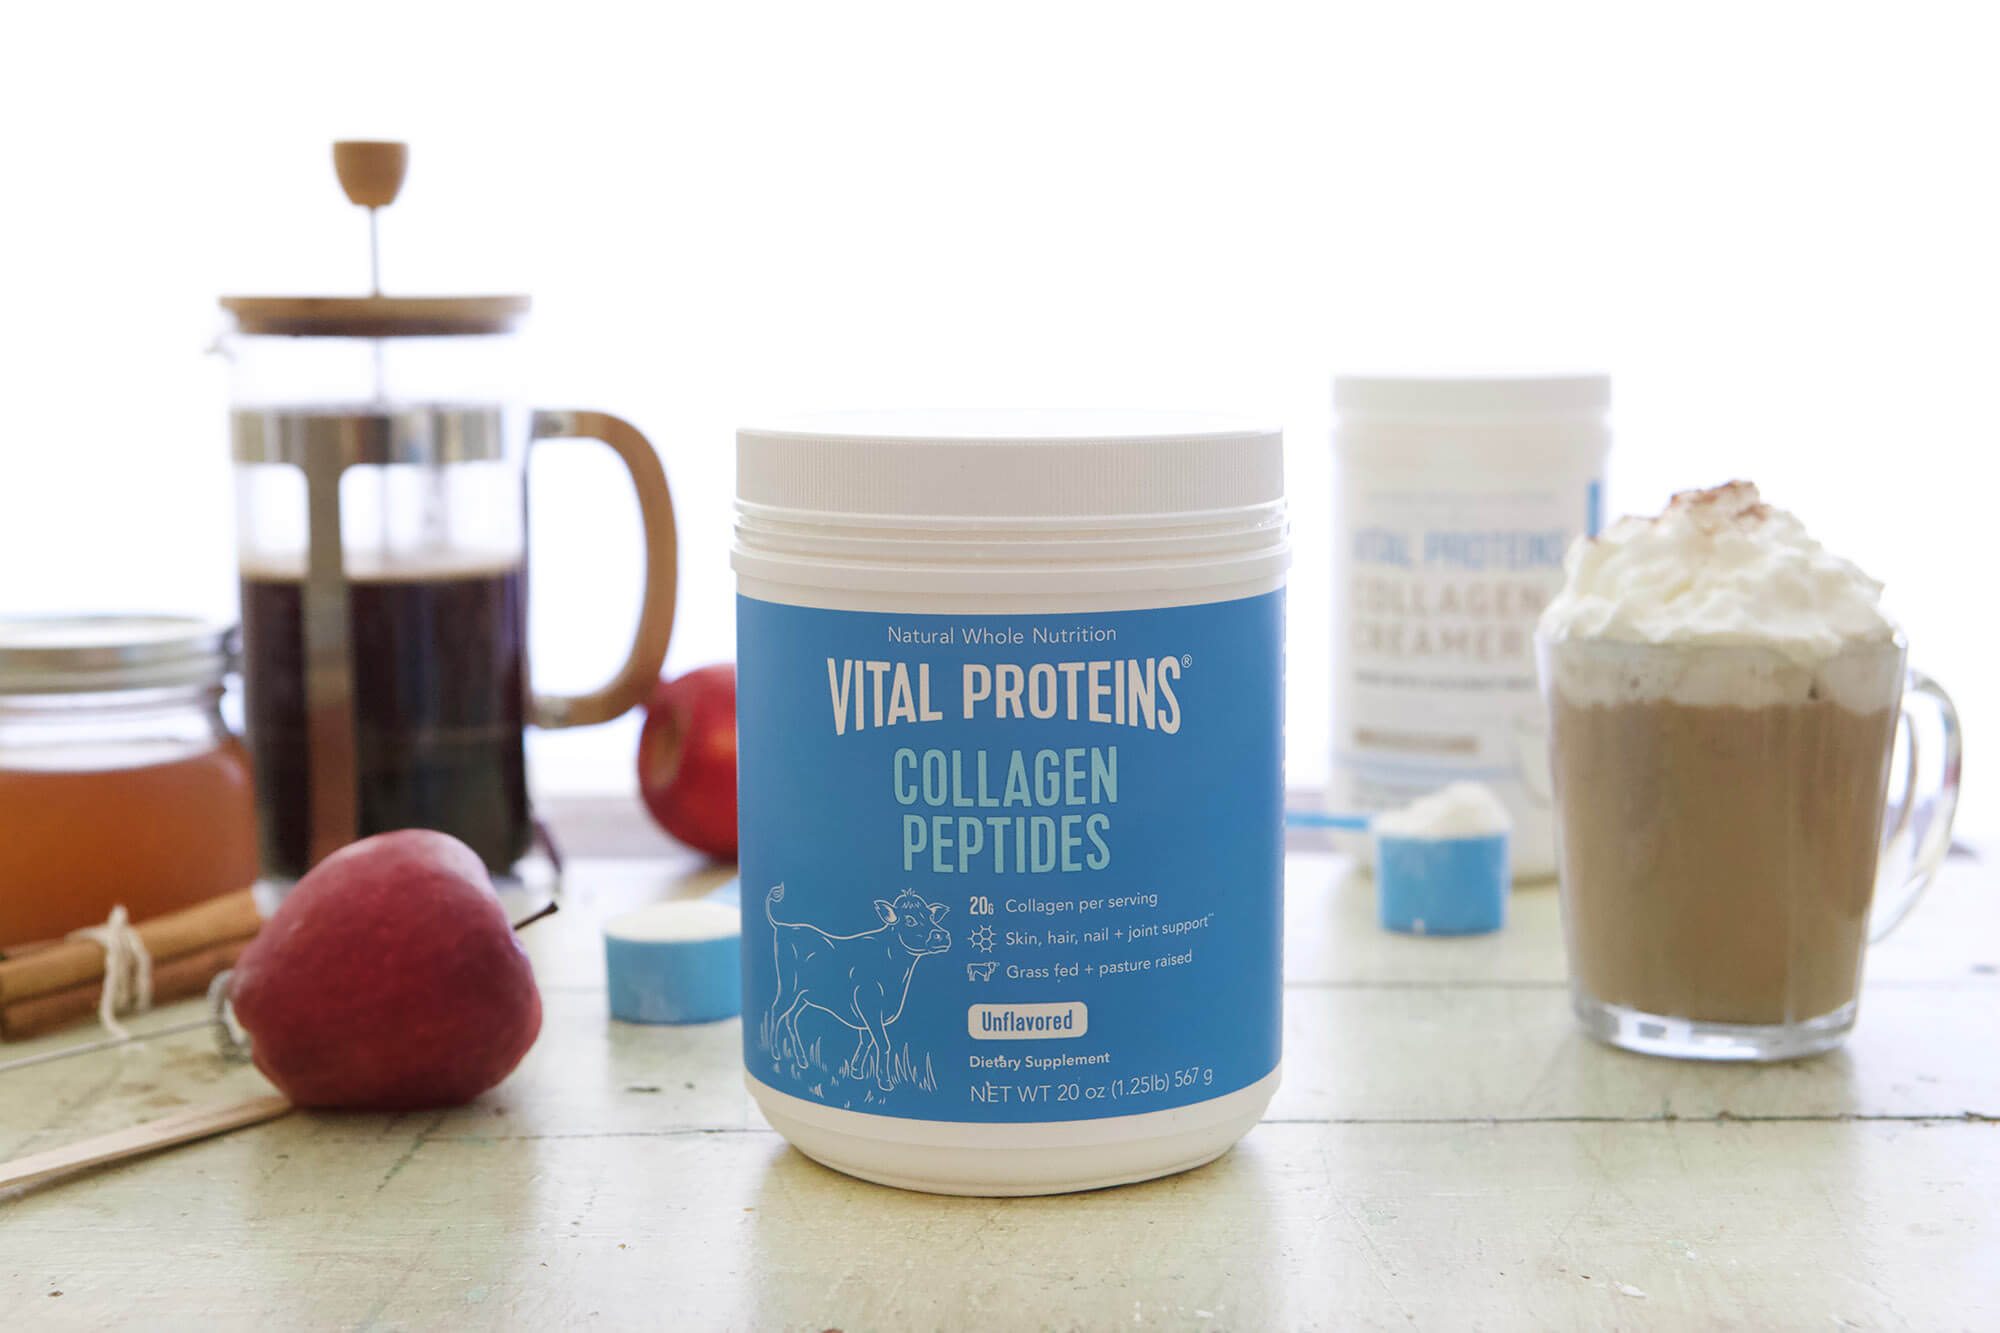 Apple Cider Latte www.sarahkayhoffman.com Vital Proteins fall #collagen #healthyliving #guthealth #Paleo #latte #healthyrecipes